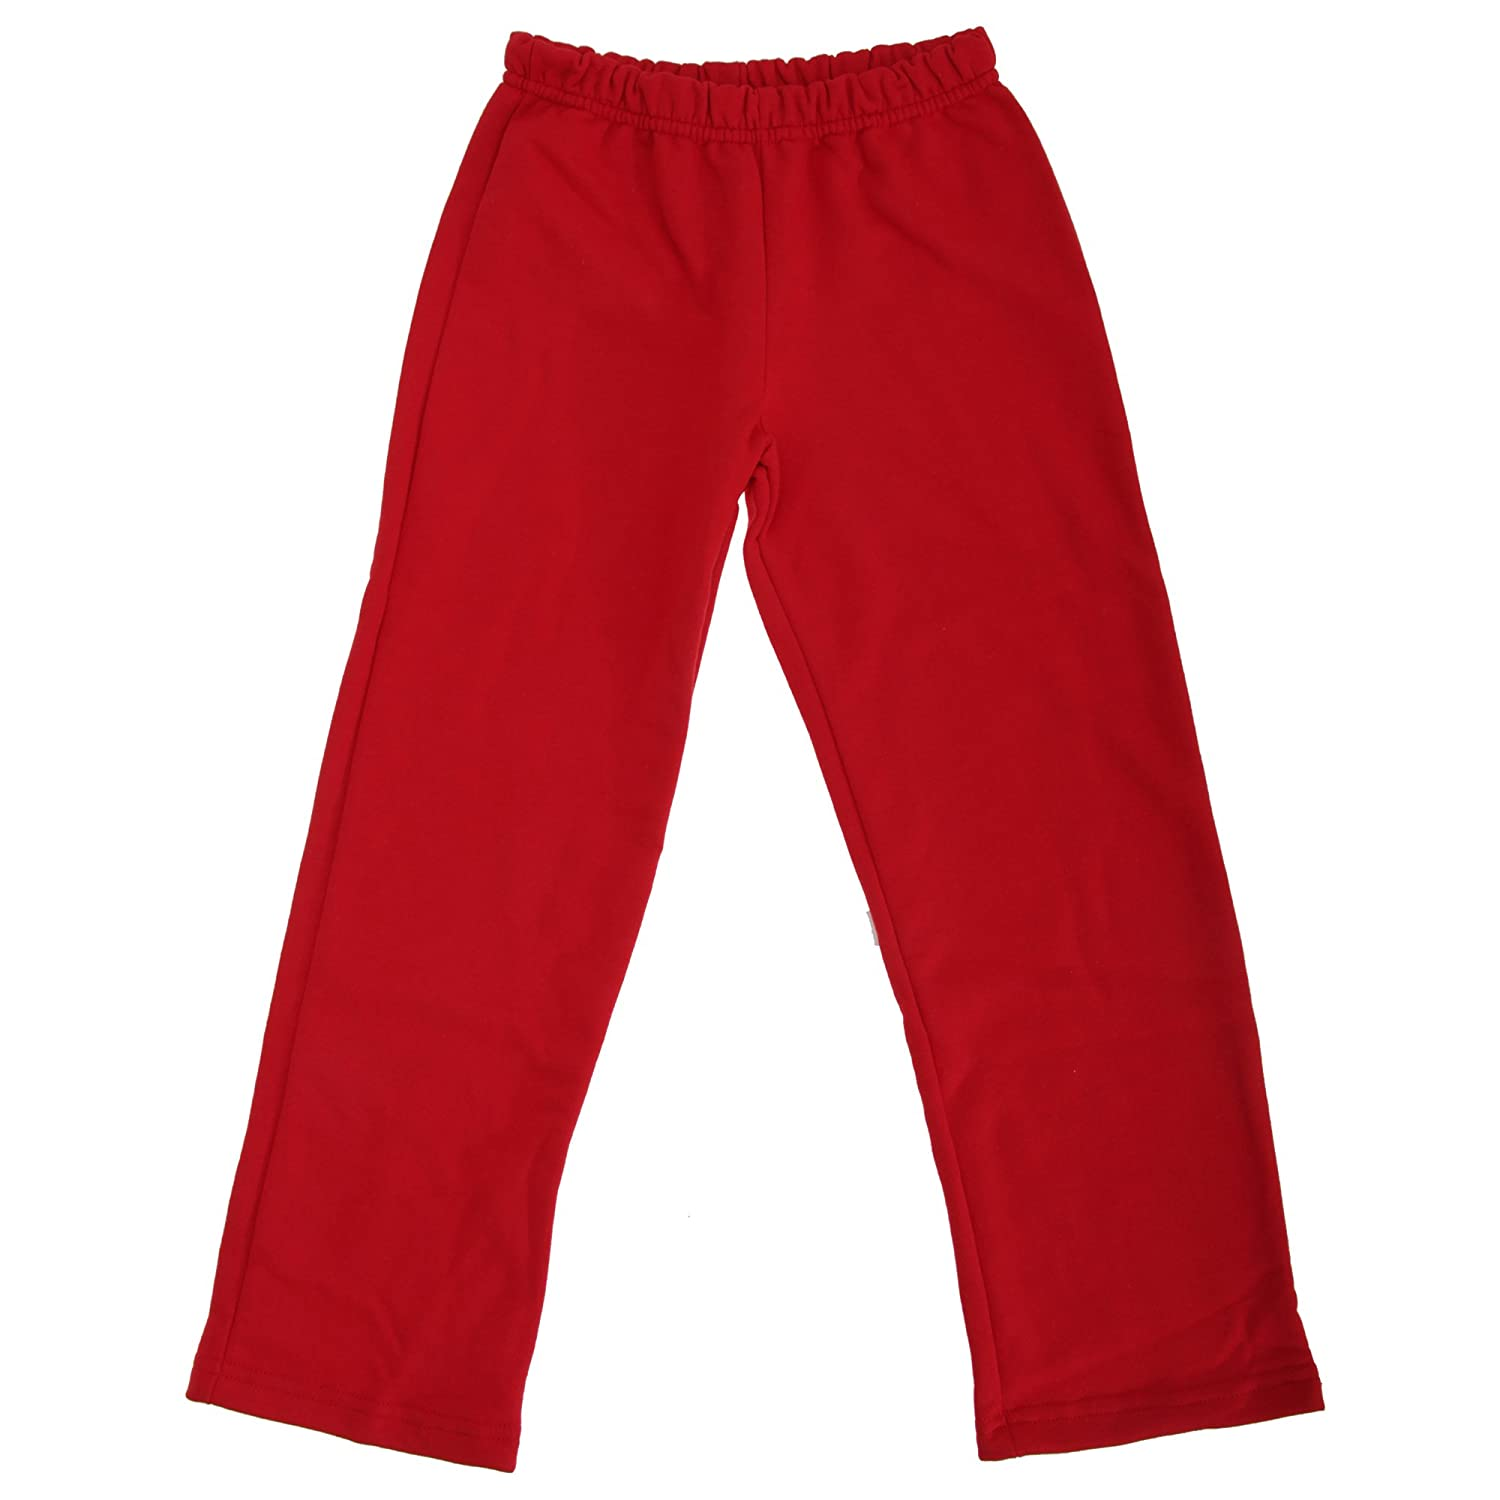 Gildan Childrens Heavy Blend Open Bottom Sweatpant/Jogging Pants